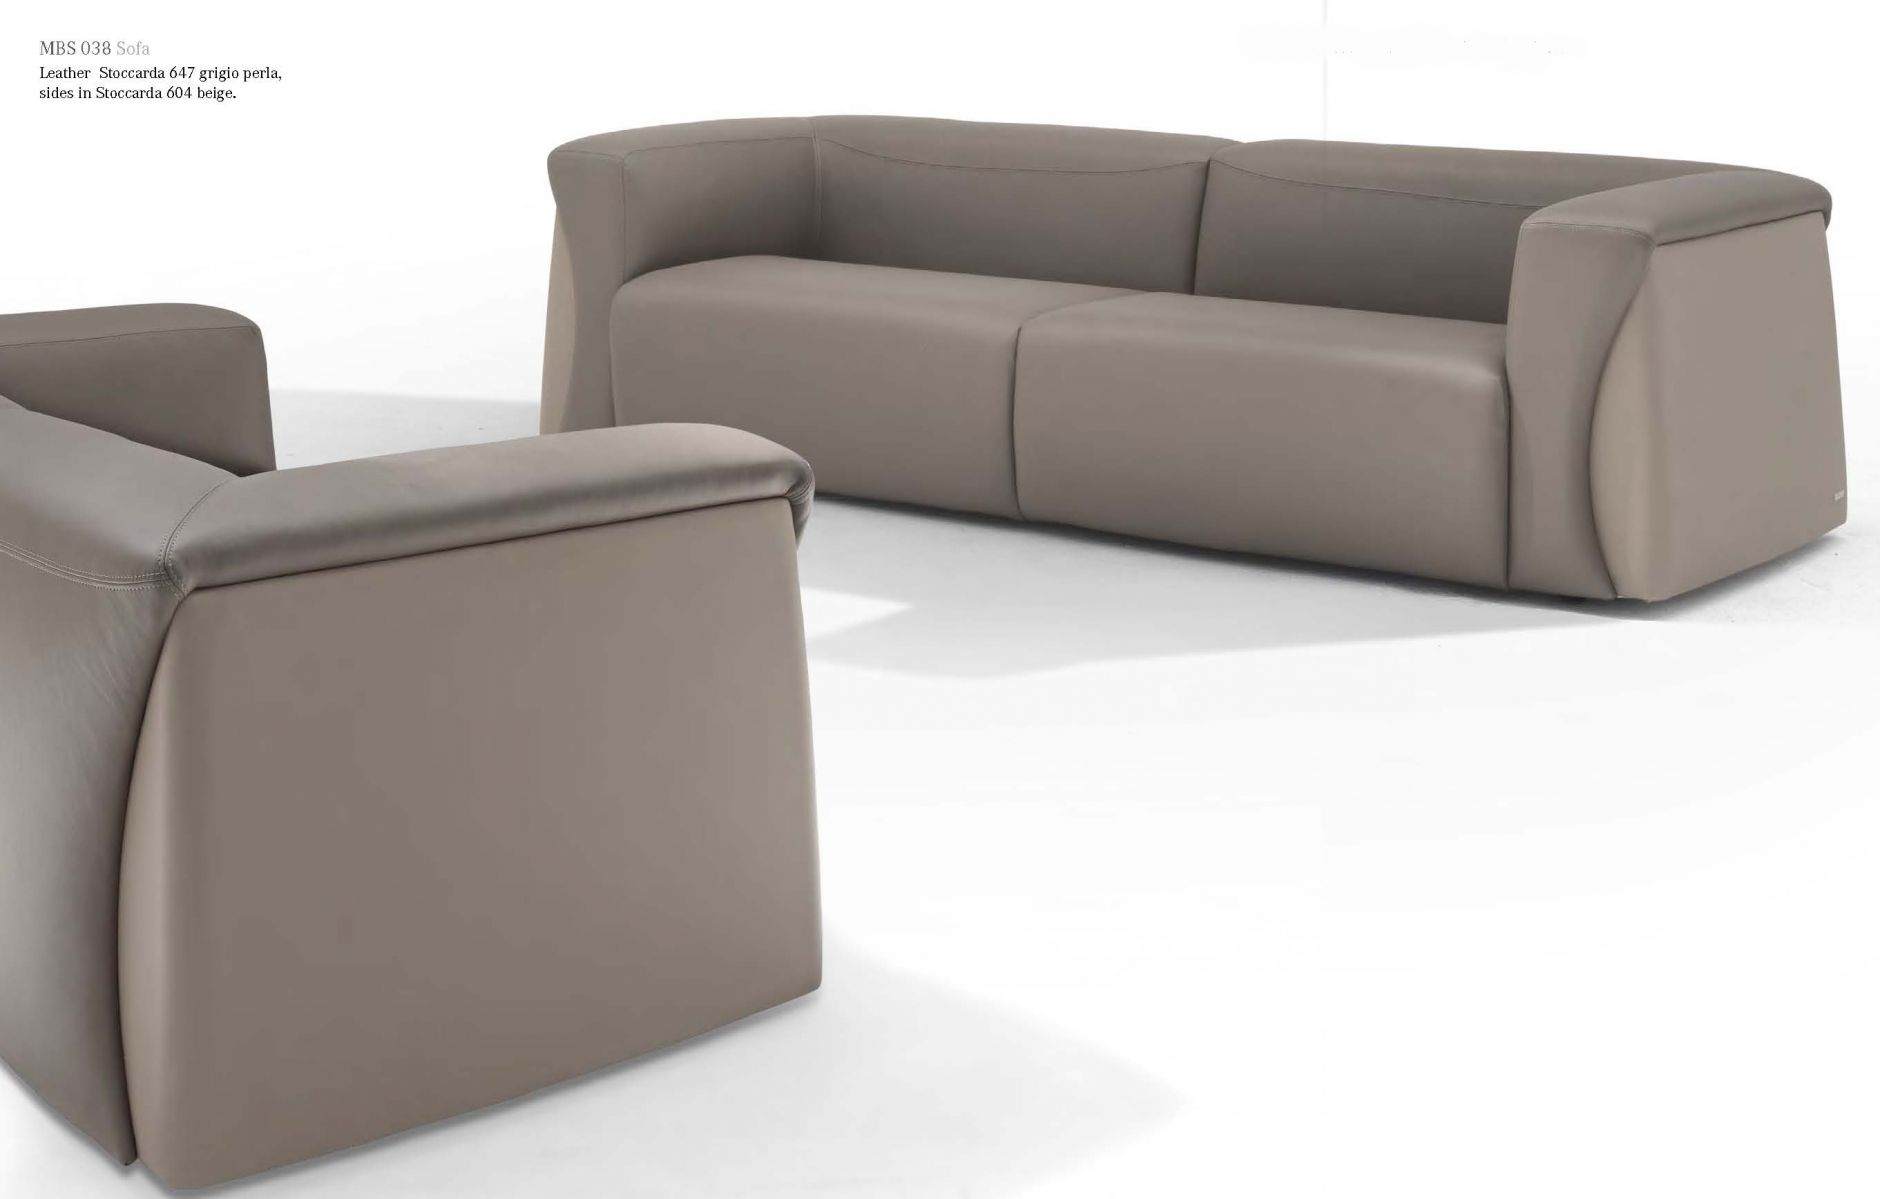 Upholstered Sofa Vip Luxury Upholstered Furniture Mercedes Benz Style 038furniture From Italy